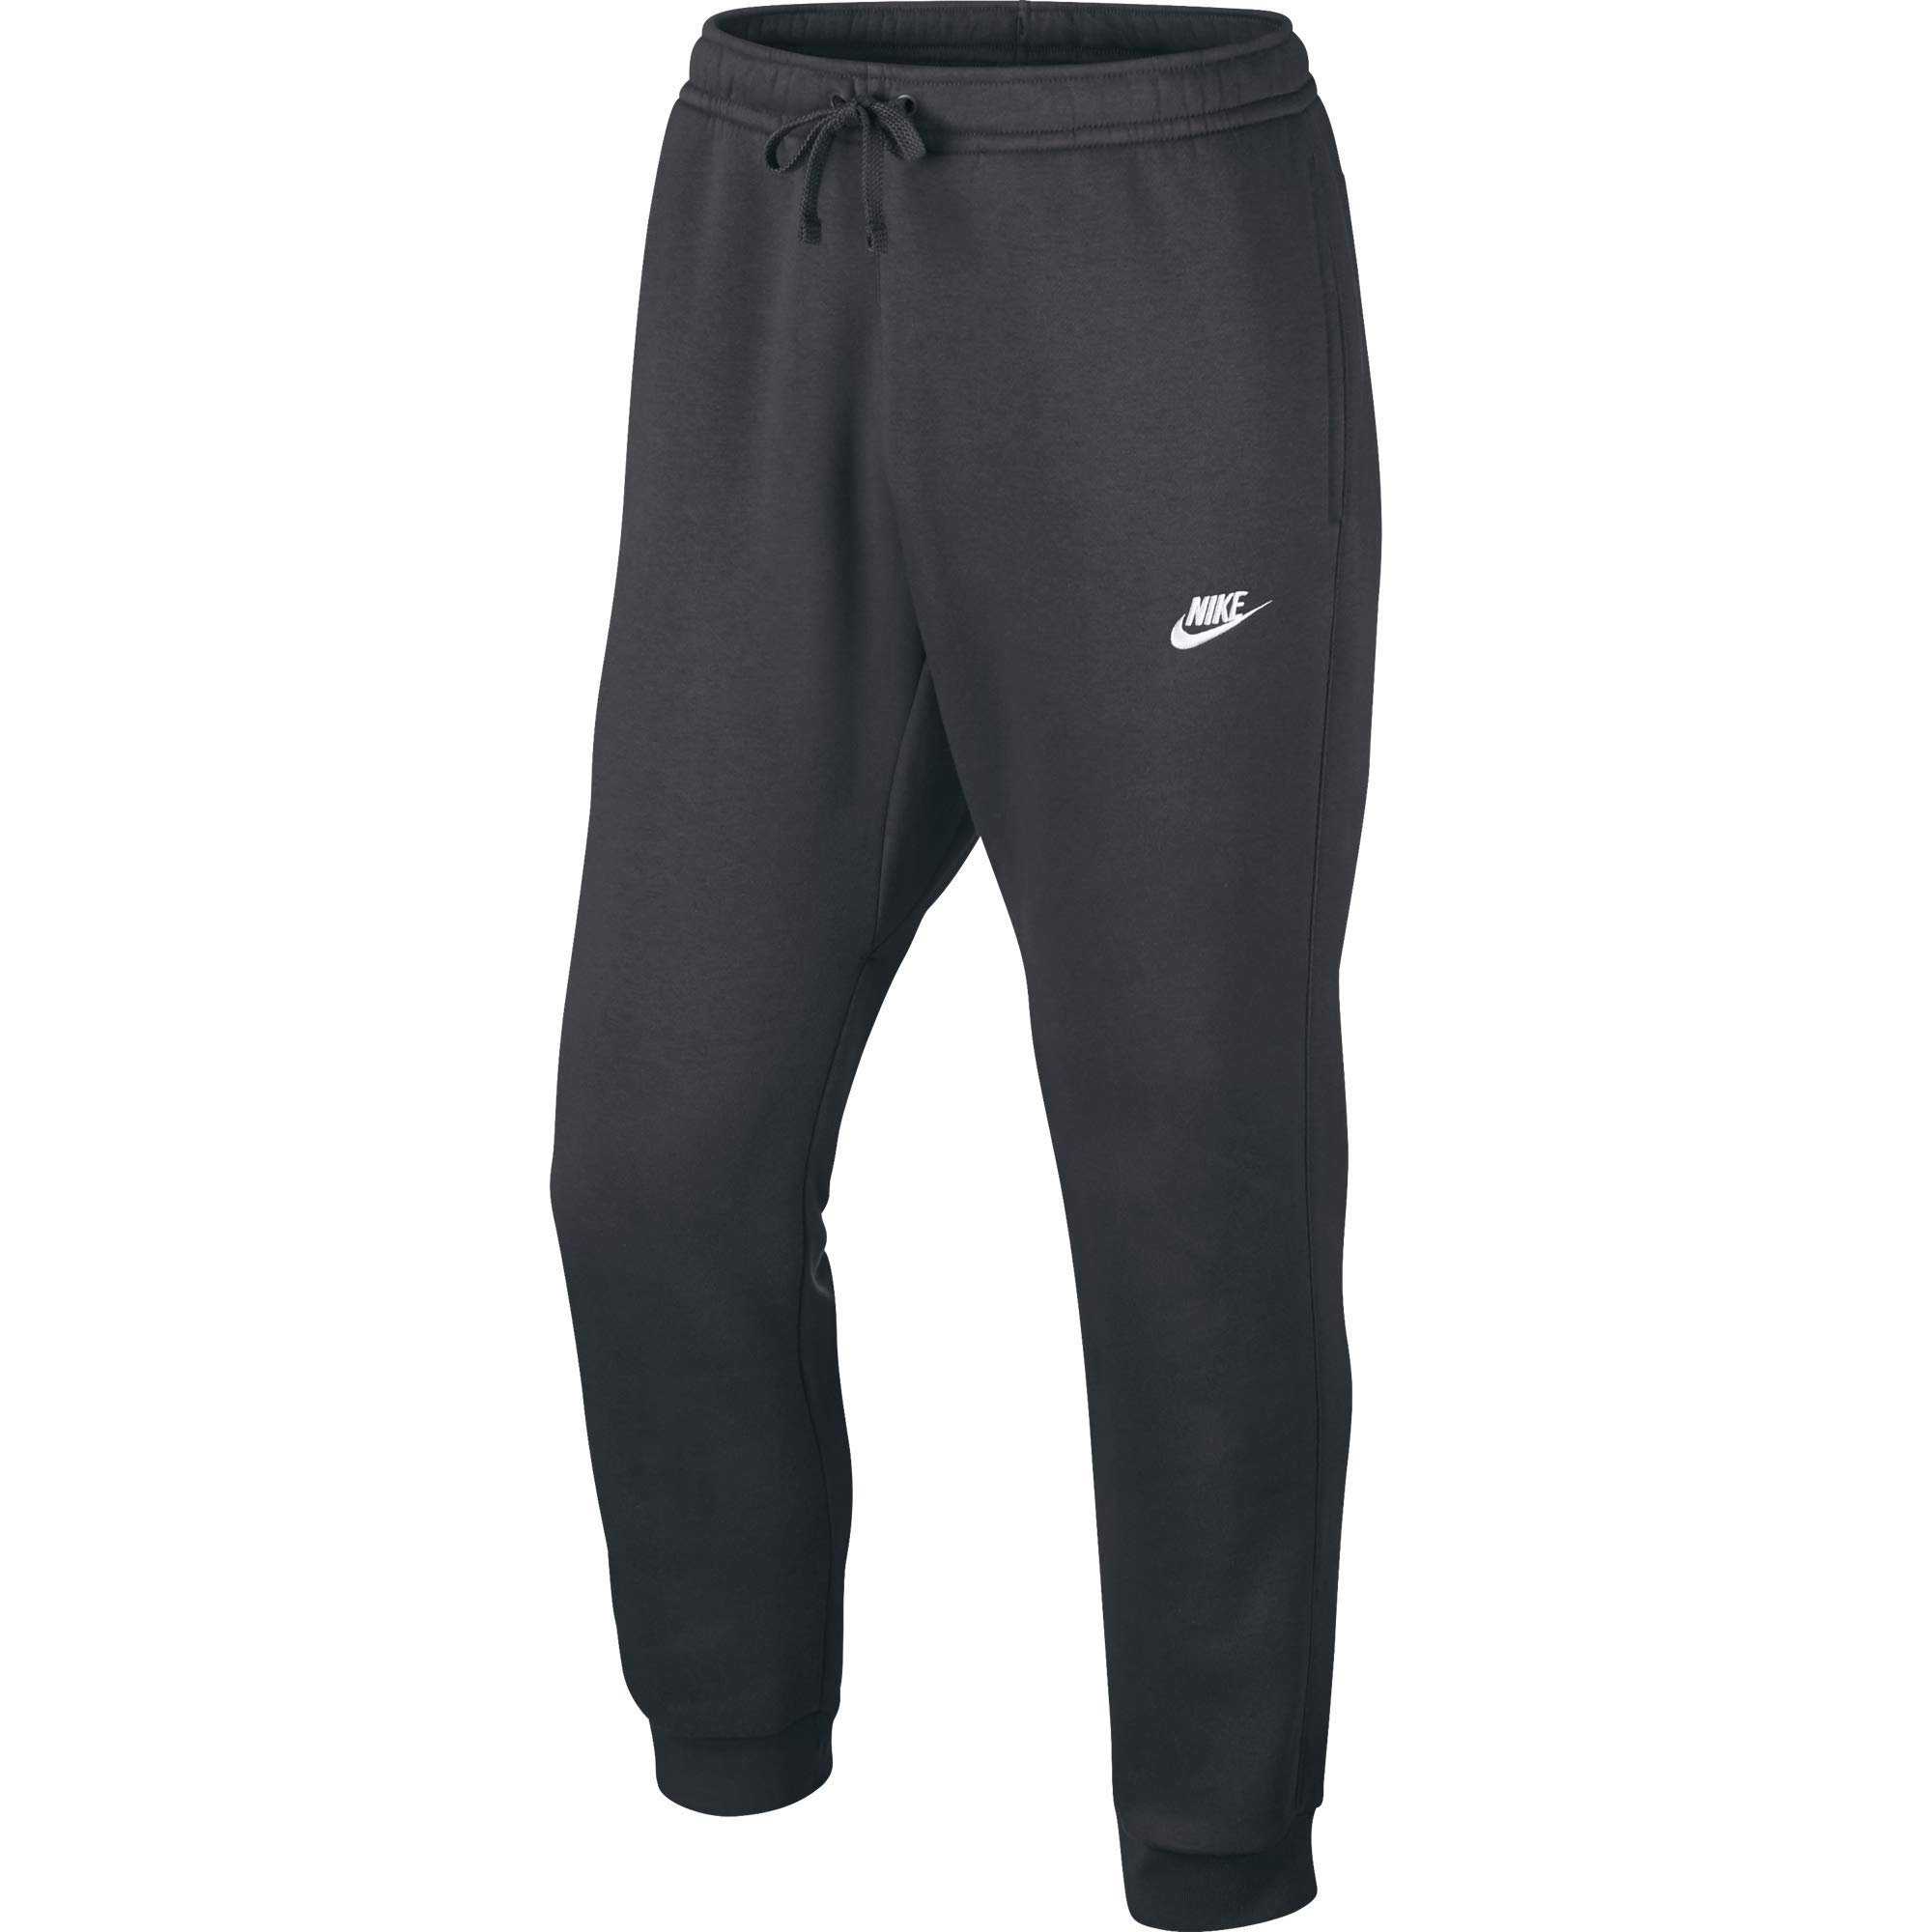 Men's Nike Sportswear Club Jogger Sweatpant, Fleece Joggers for Men with Pockets, Charcoal Heather/White, XS by Nike